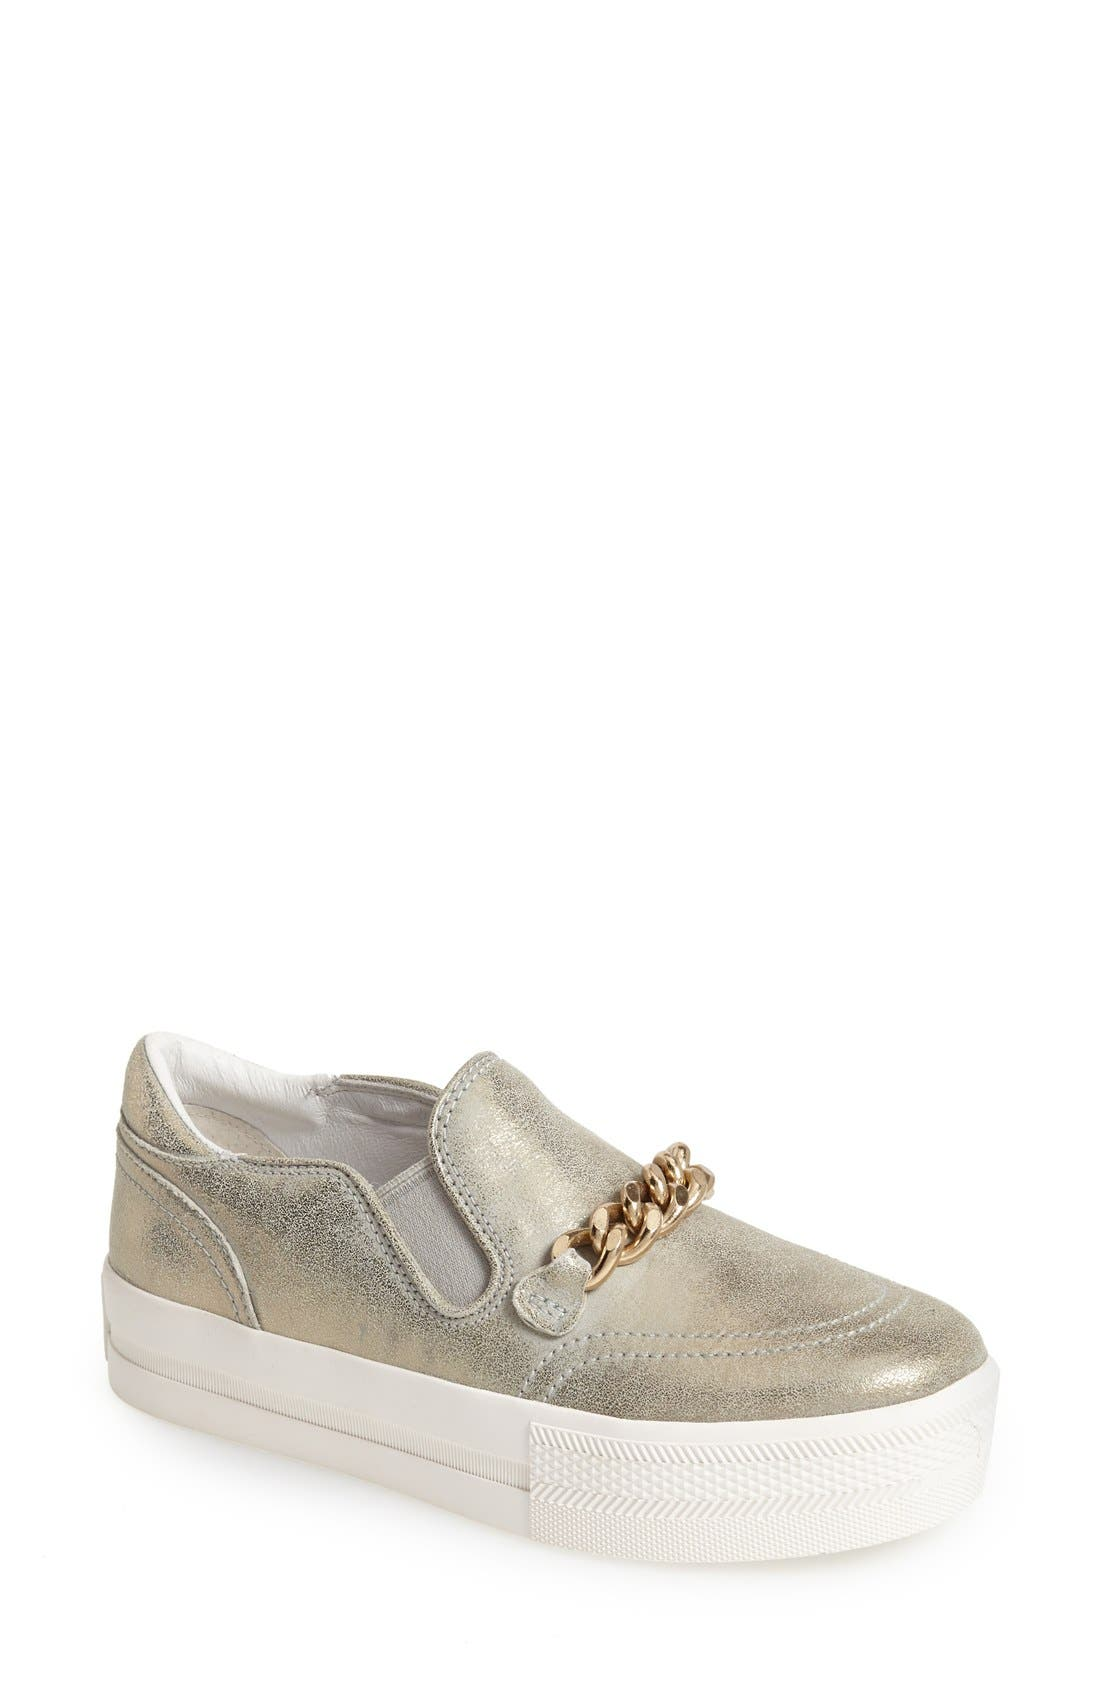 Alternate Image 1 Selected - Ash 'Joe' Platform Sneaker (Women)